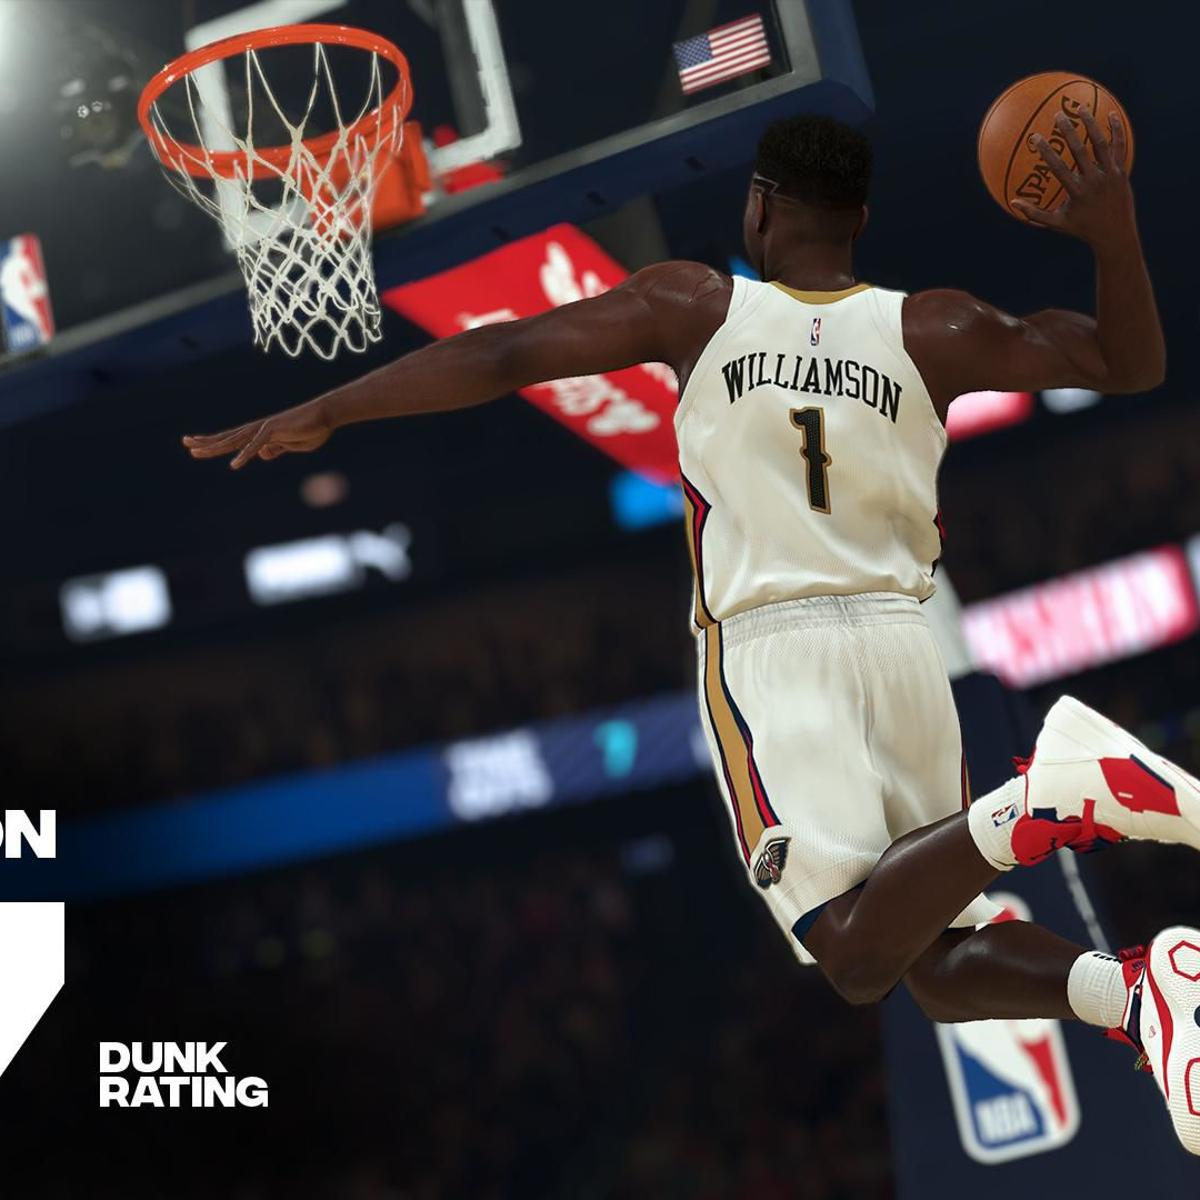 The Best Dunker In Nba 2k20 Pelicans Rookie Zion Williamson Game